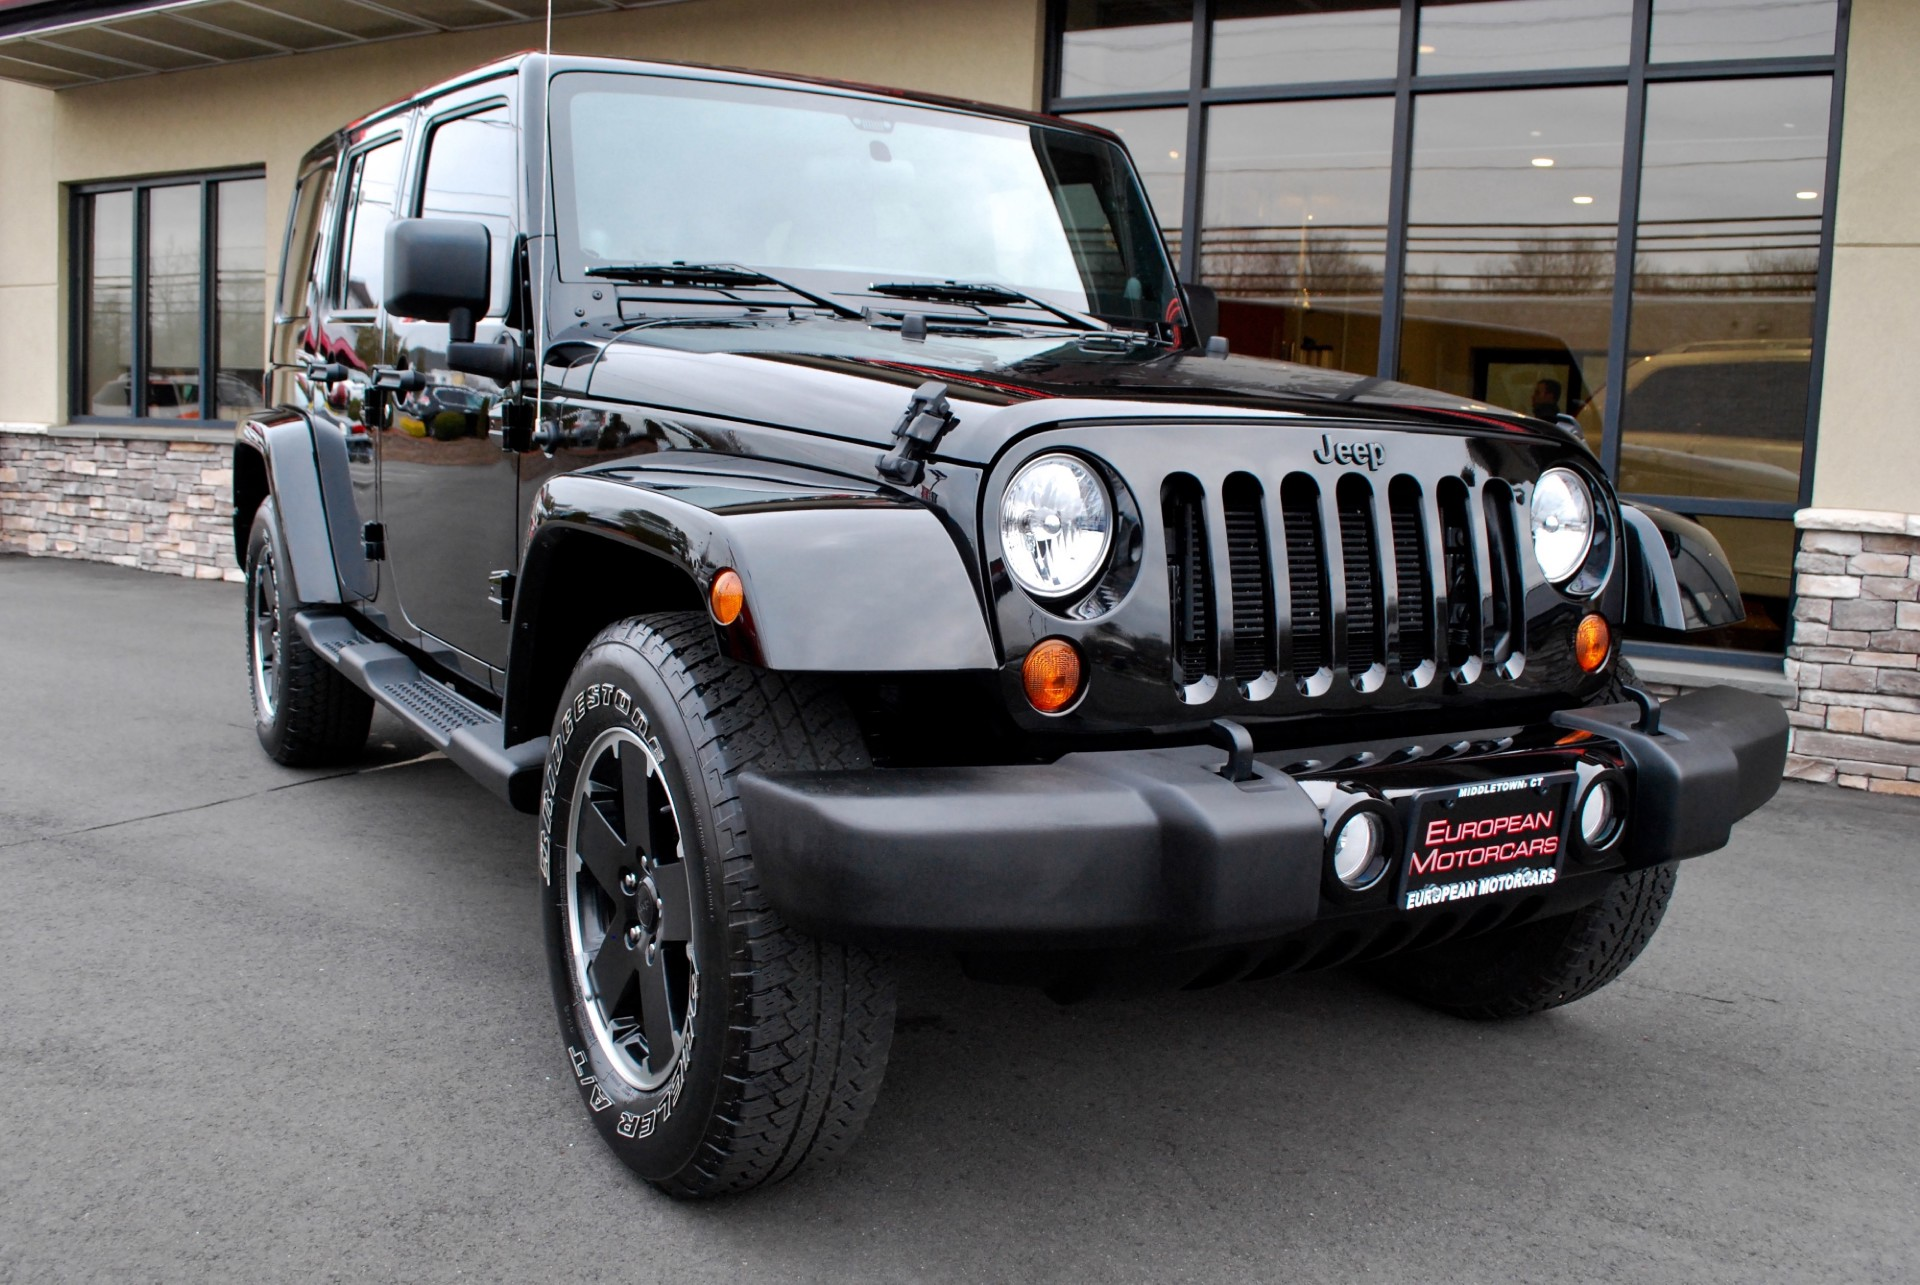 2012 jeep wrangler unlimited sahara w altitude pkg for sale near middletown ct ct jeep. Black Bedroom Furniture Sets. Home Design Ideas